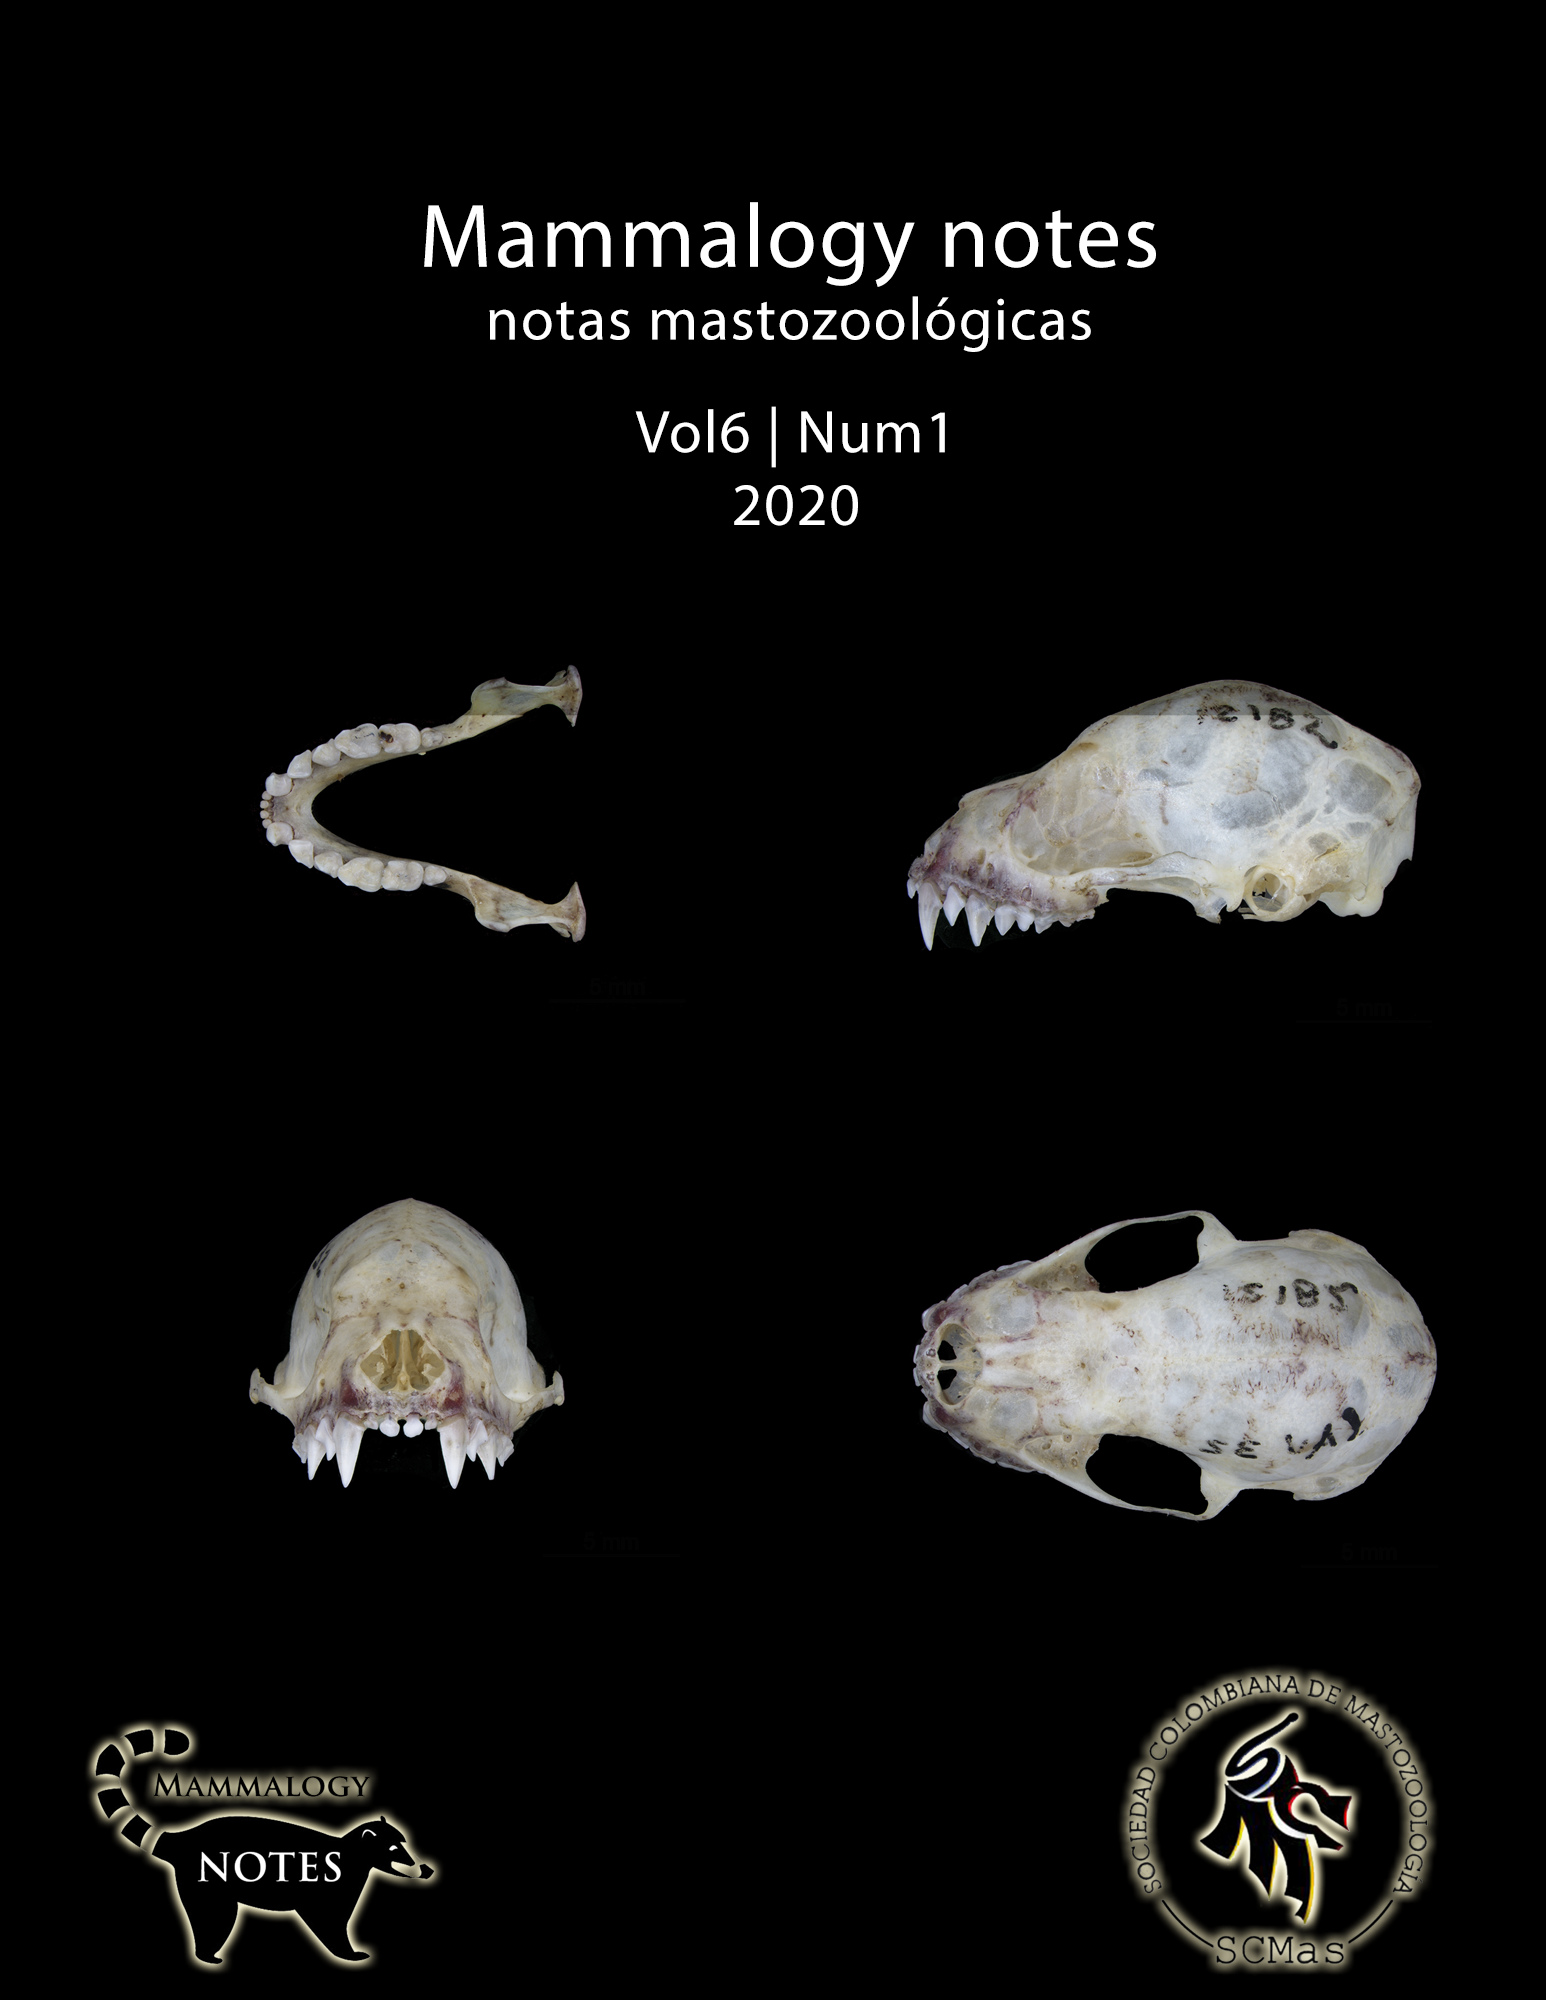 Mammalogy Notes. SCMas. Early View